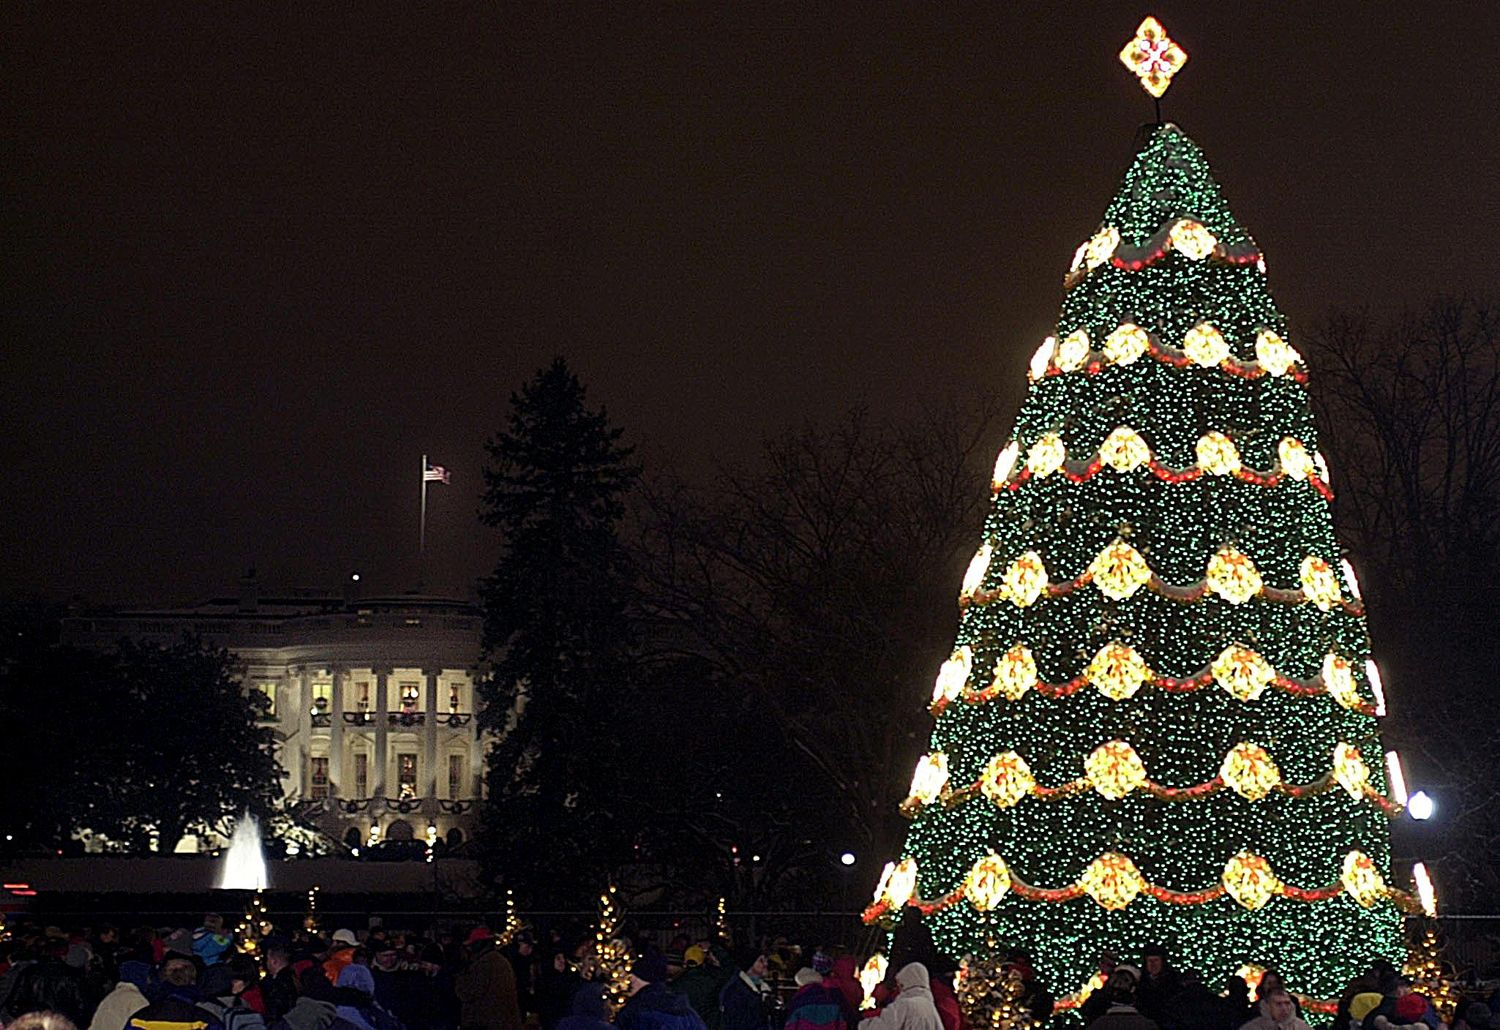 80 years of christmas at the white house - White House Christmas Tree Lighting